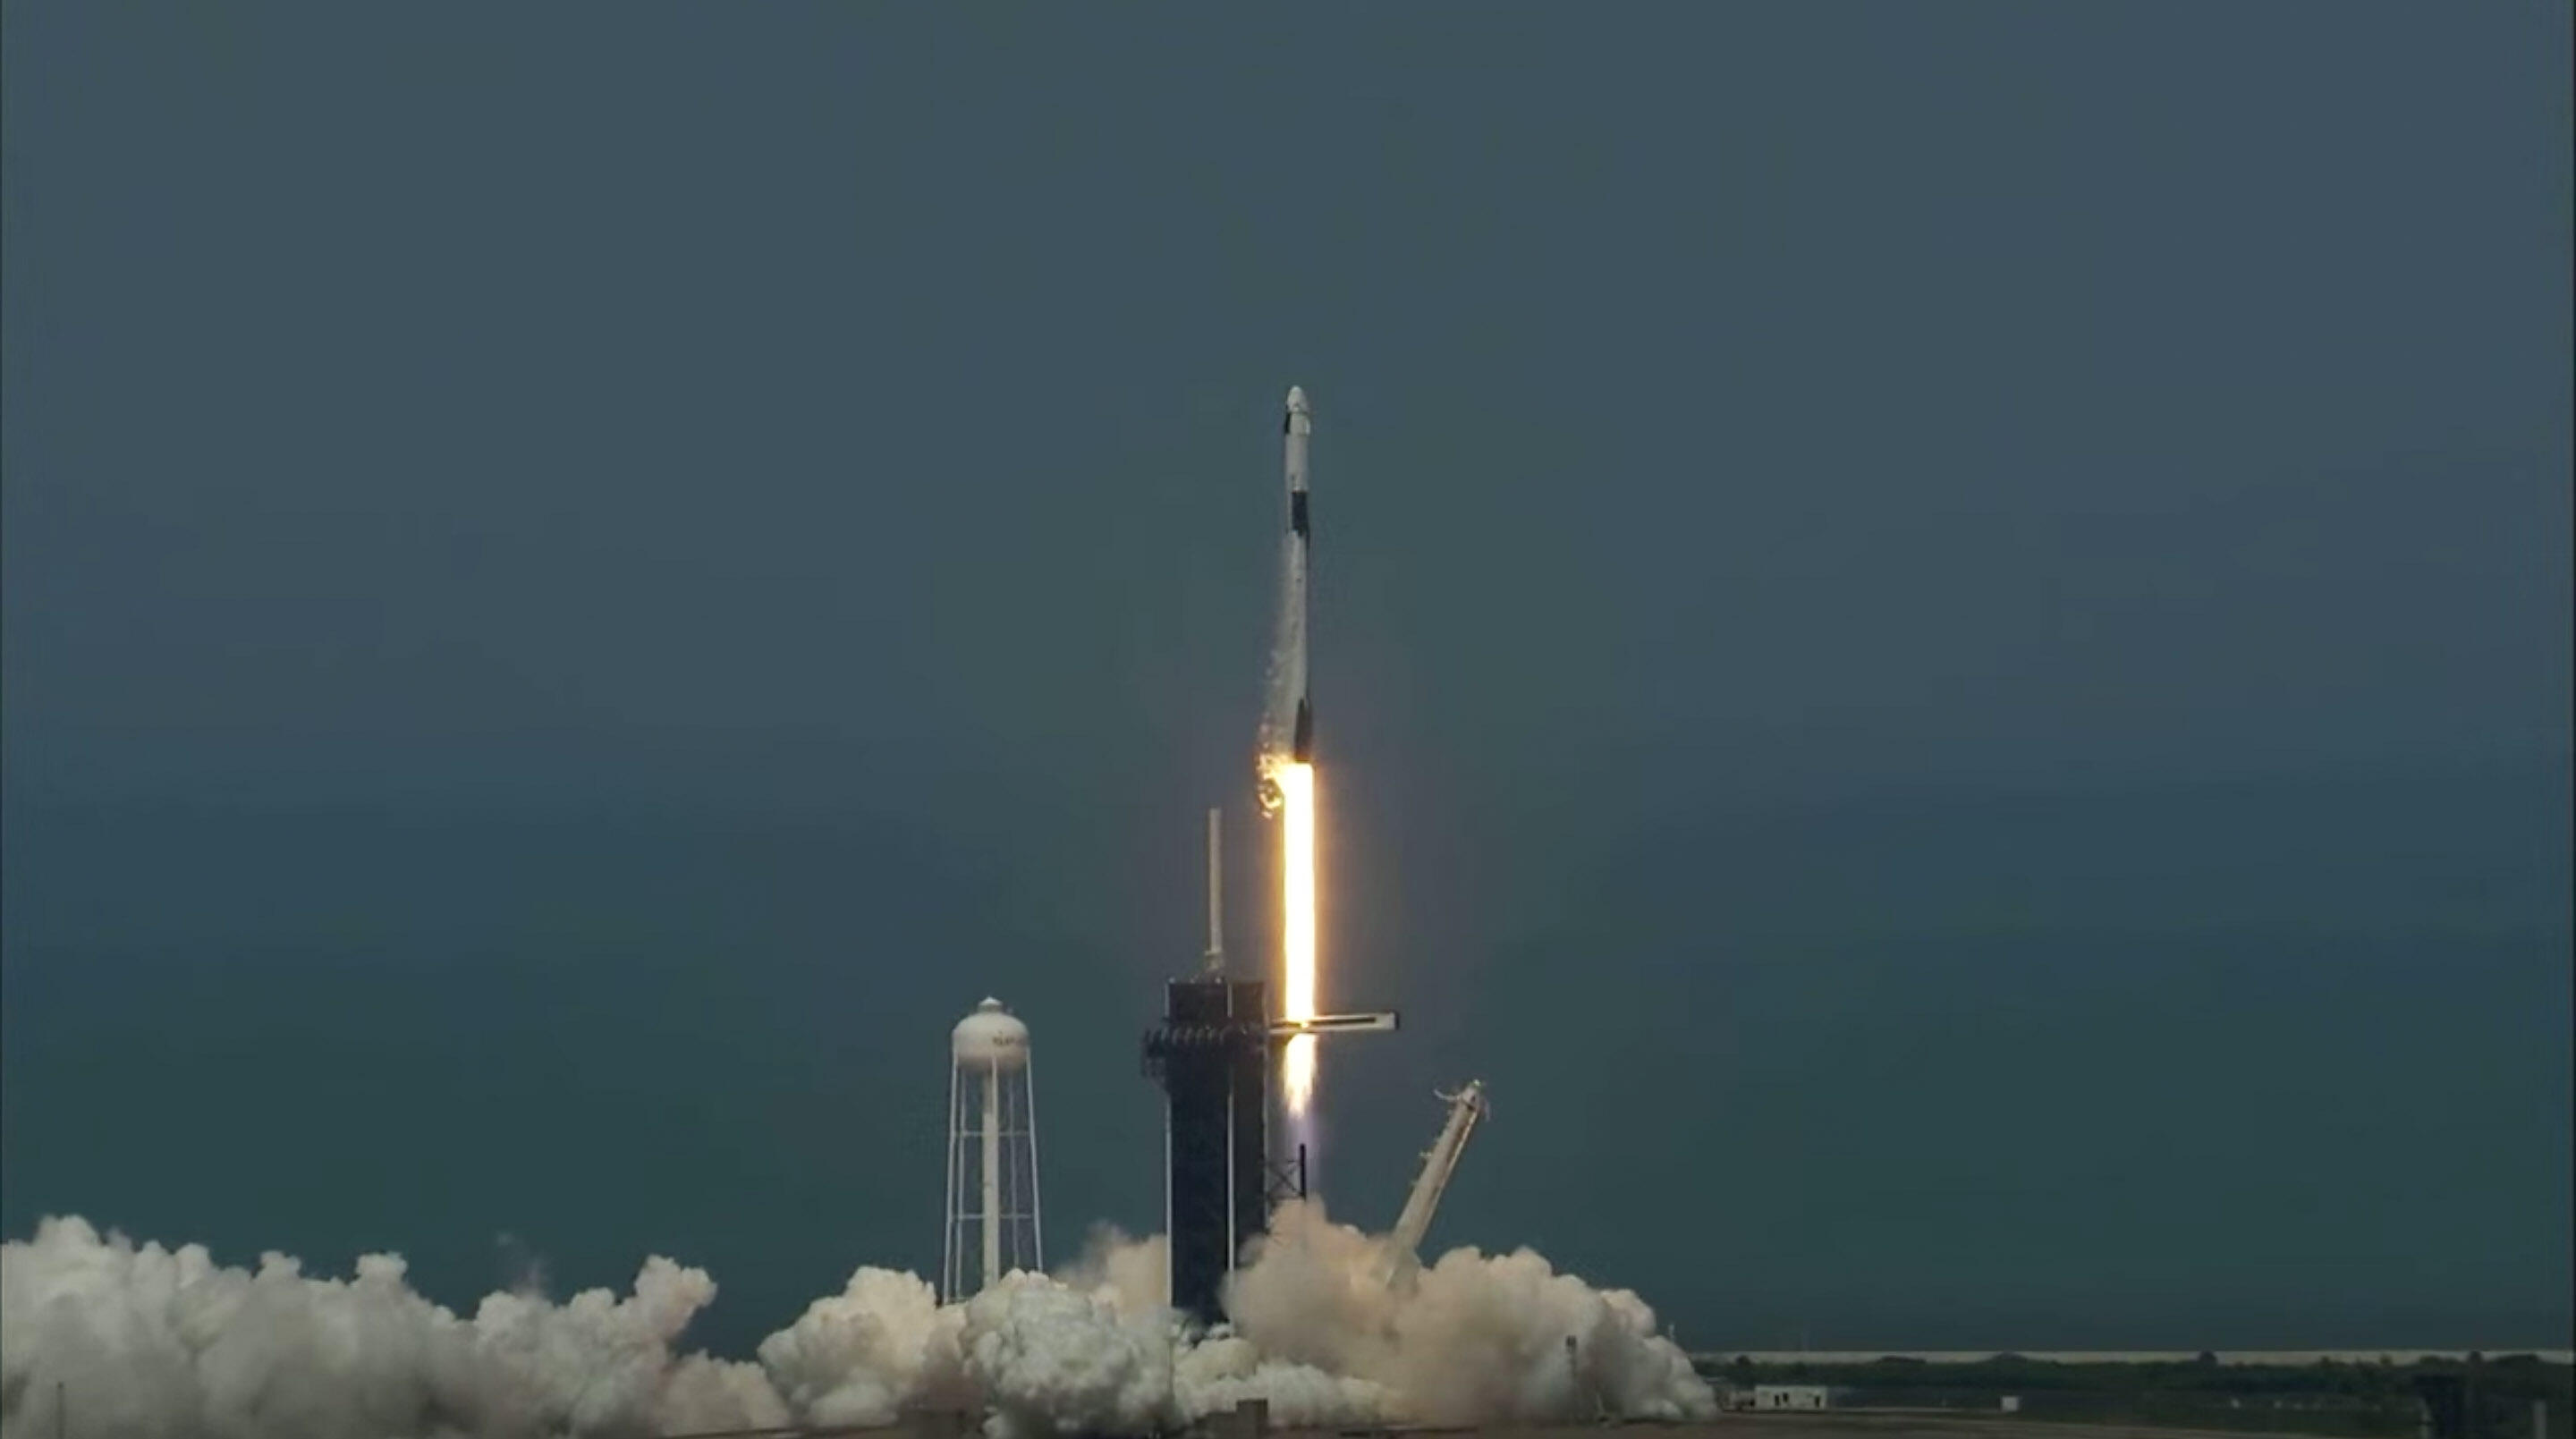 SpaceX Falcon 9 clears the tower